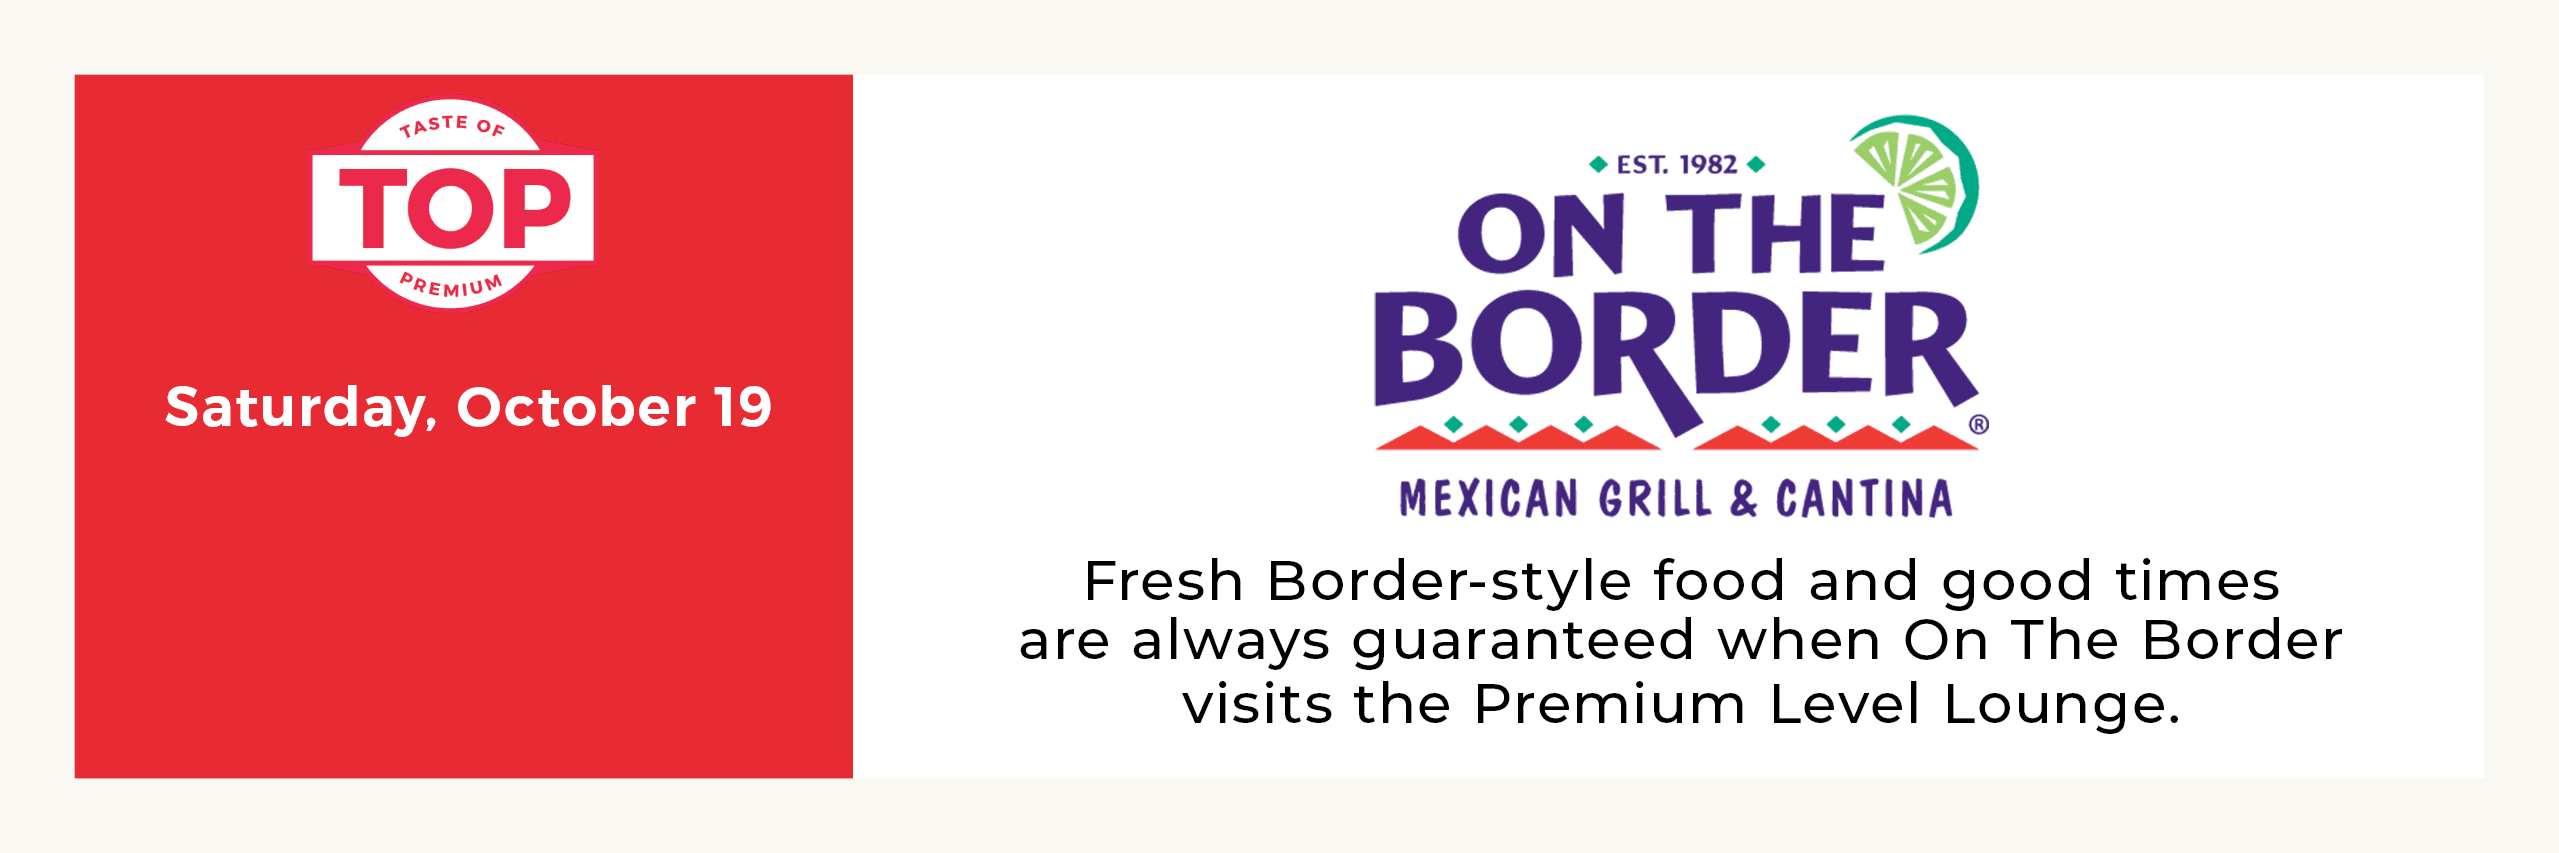 On The Border Opens in new window